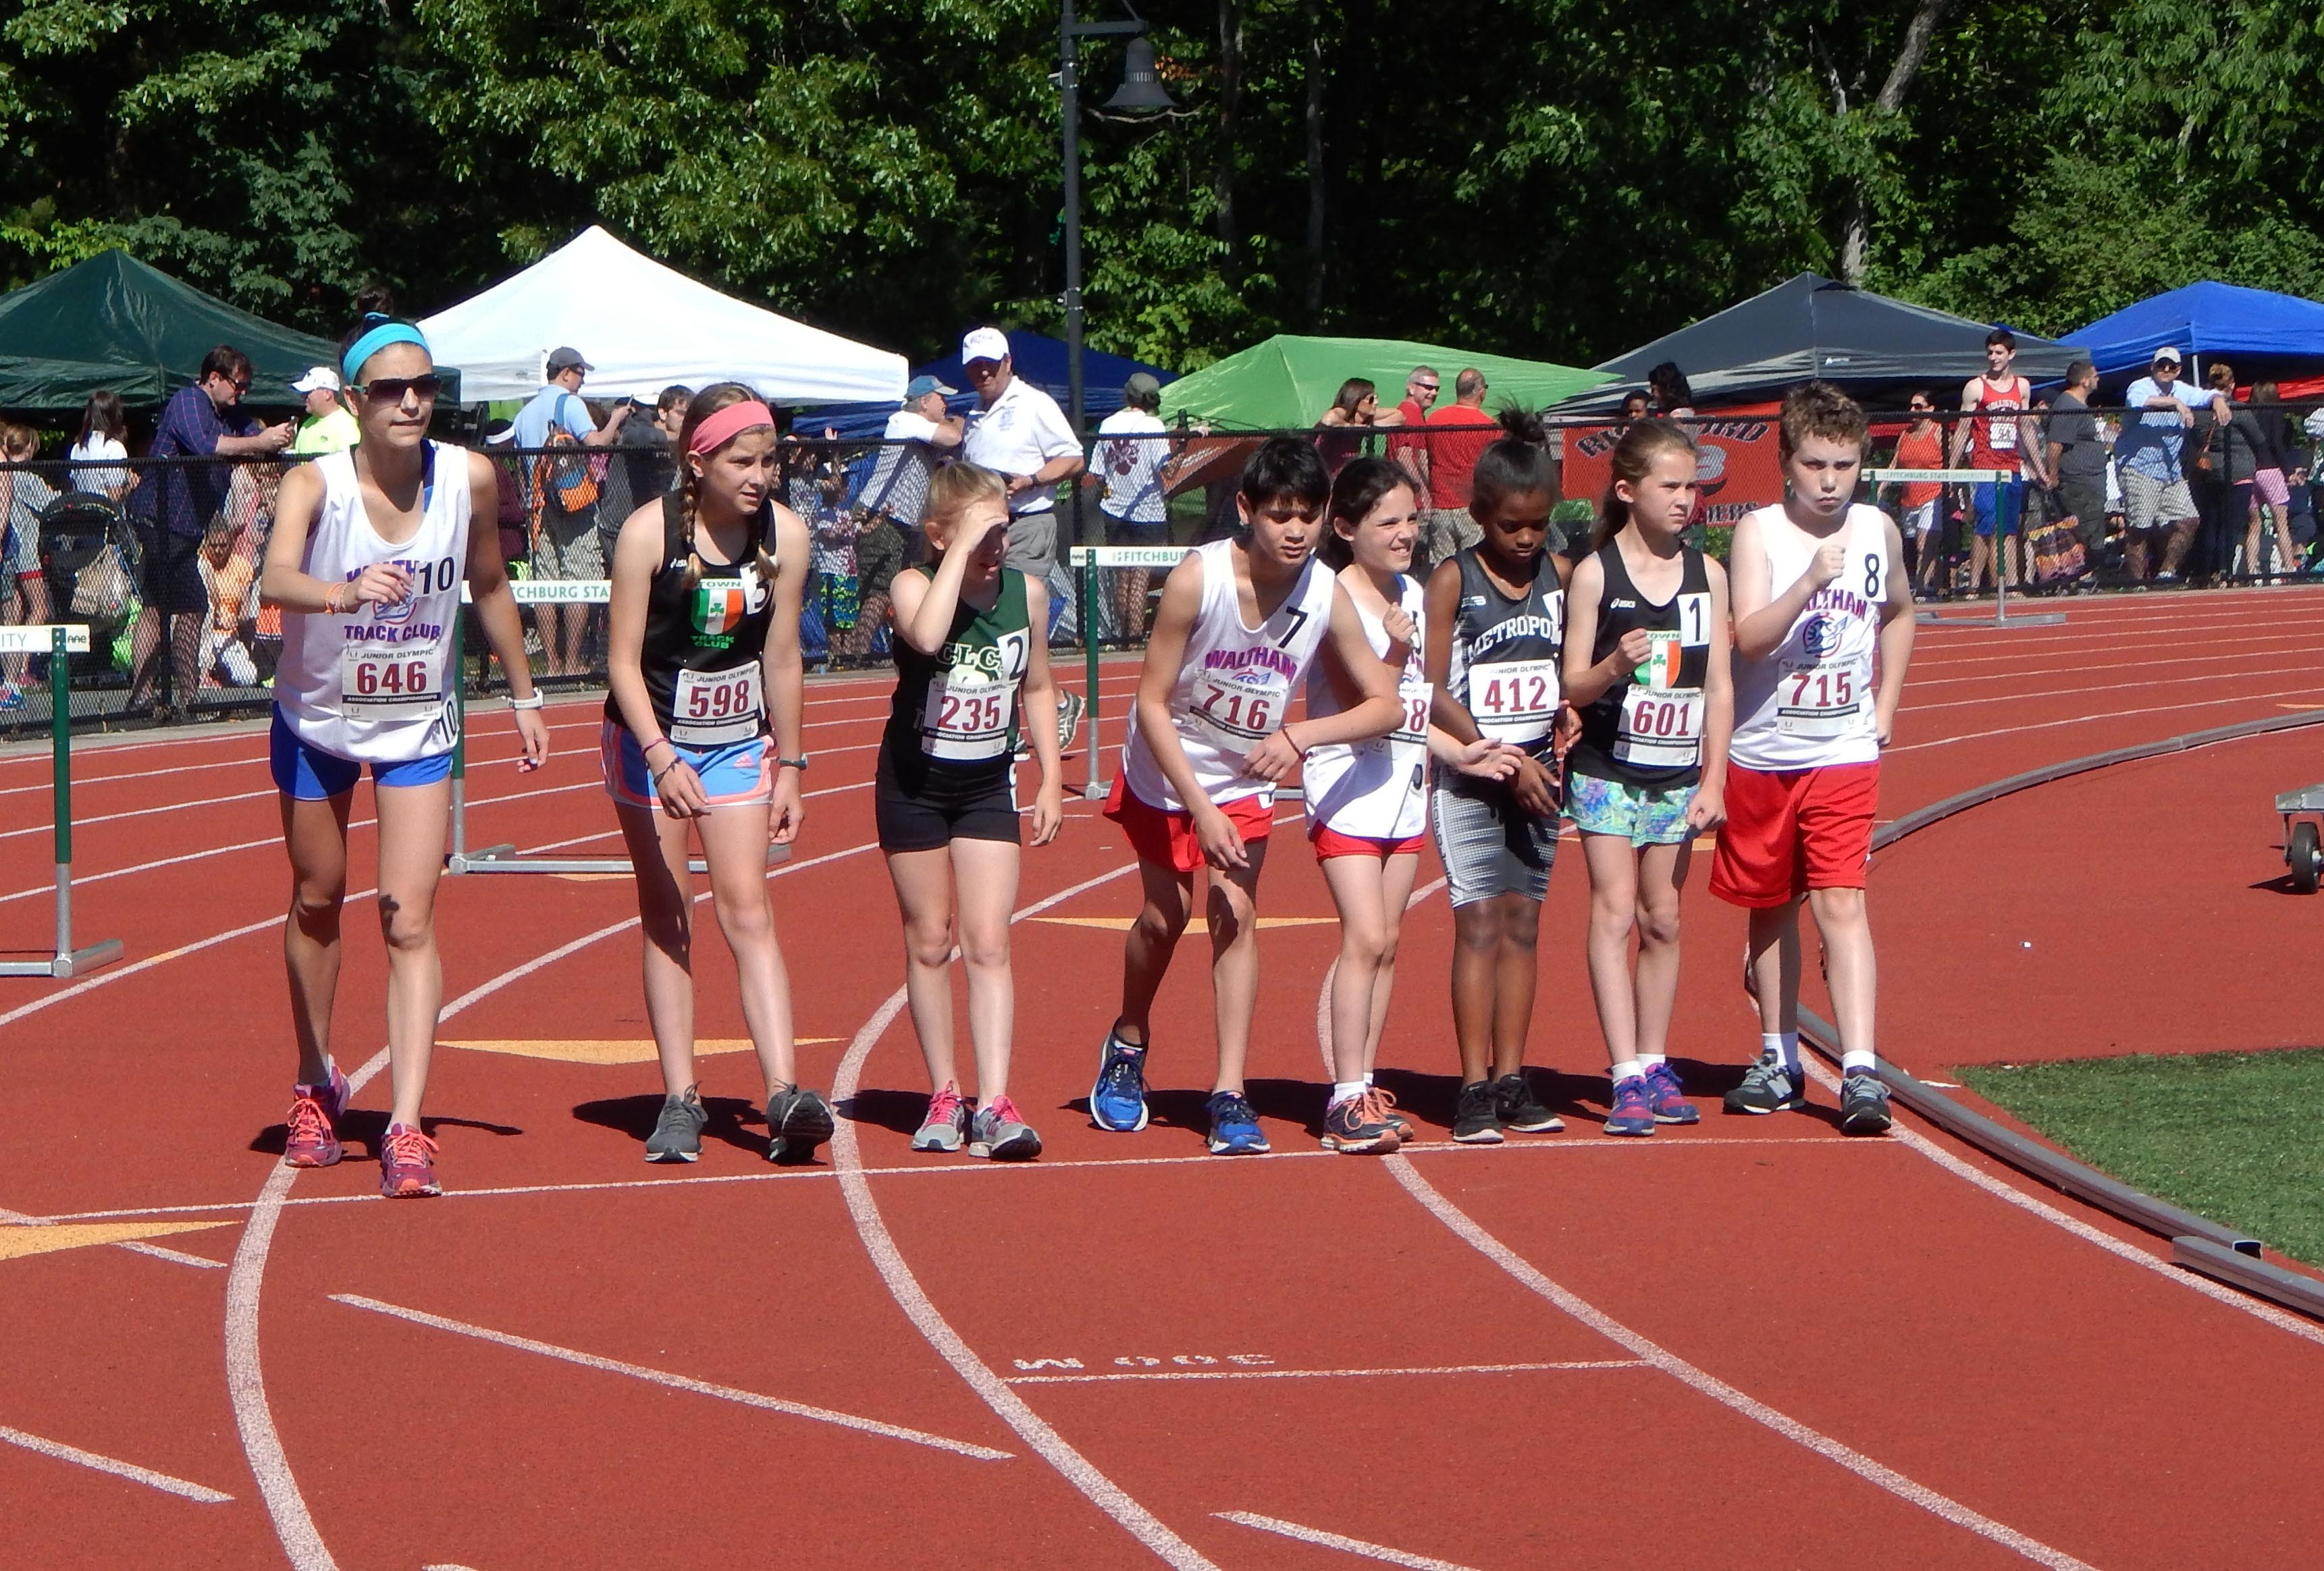 2016 USATF-NE Junior Olympic 1500m Race Walk